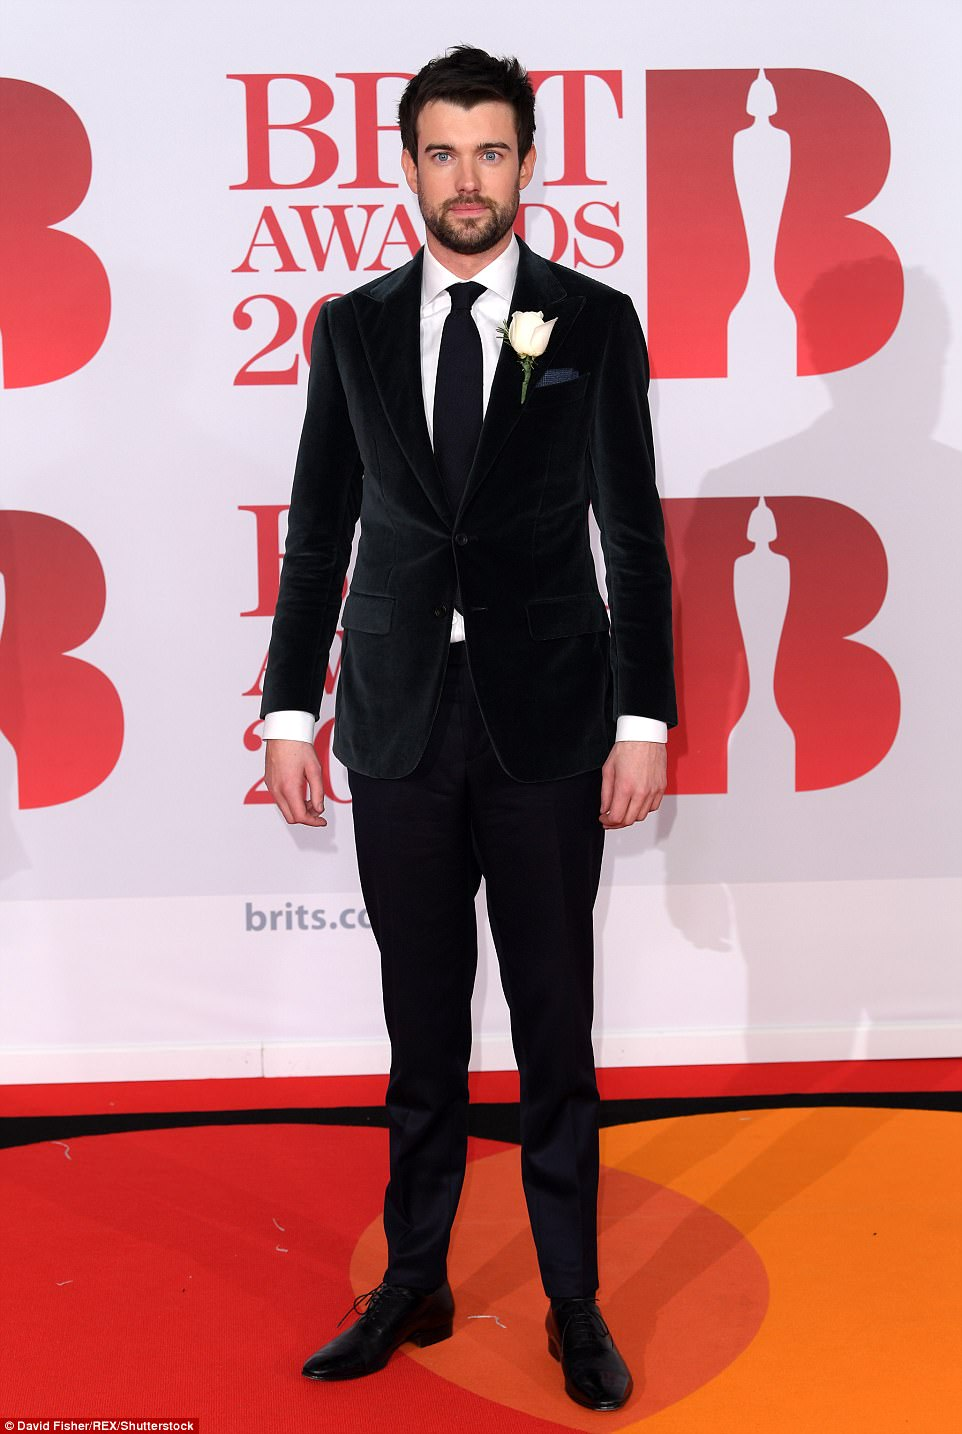 Host for the night Jack Whitehall looked handsome in a deep green velvet suit, crisp white shirt and navy tie